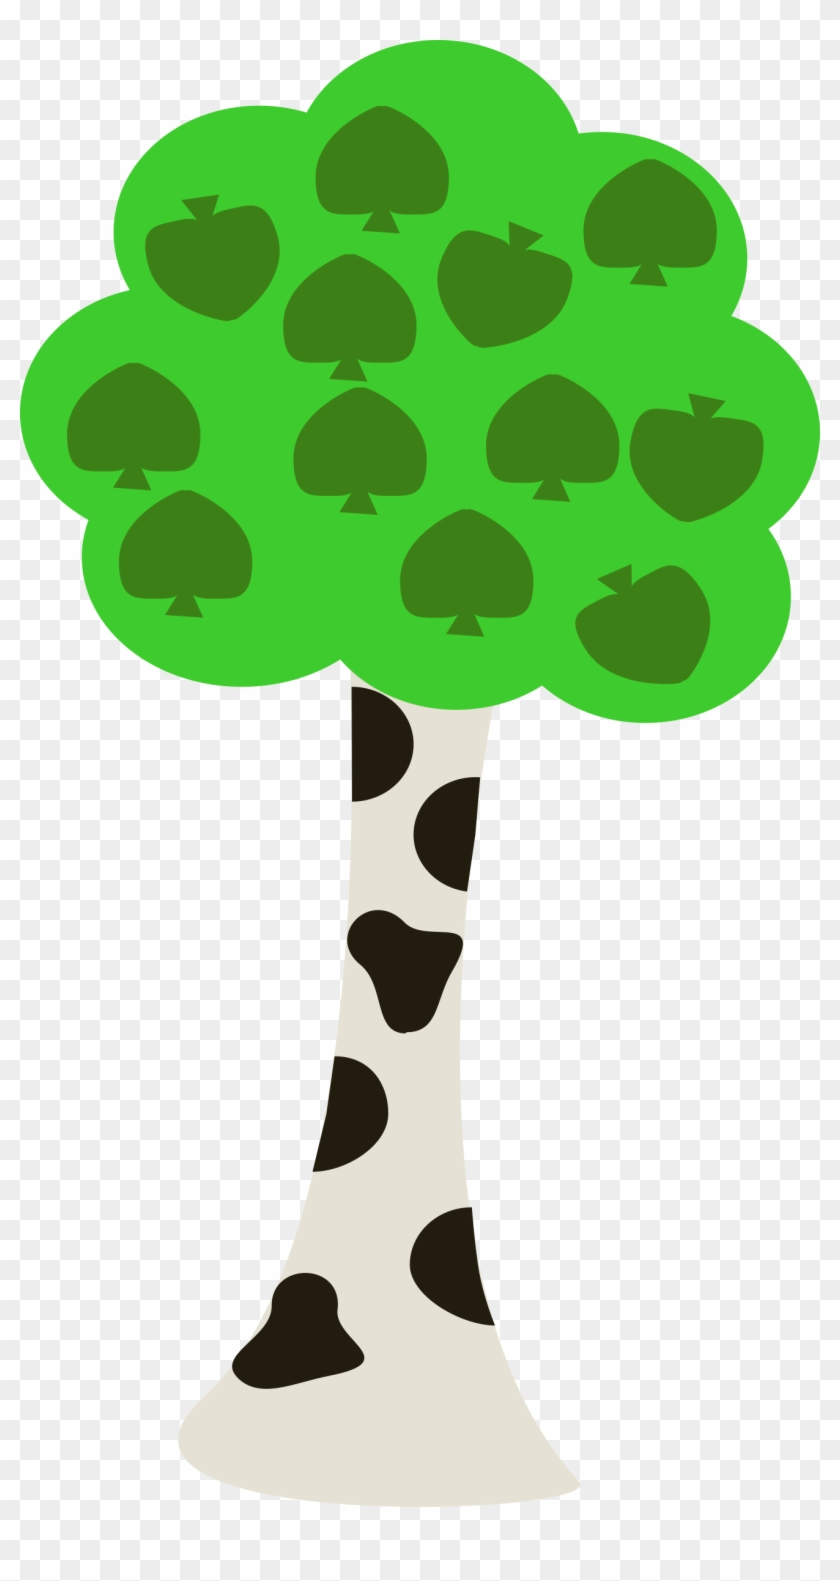 Big Image - Cartoon Tree #5039